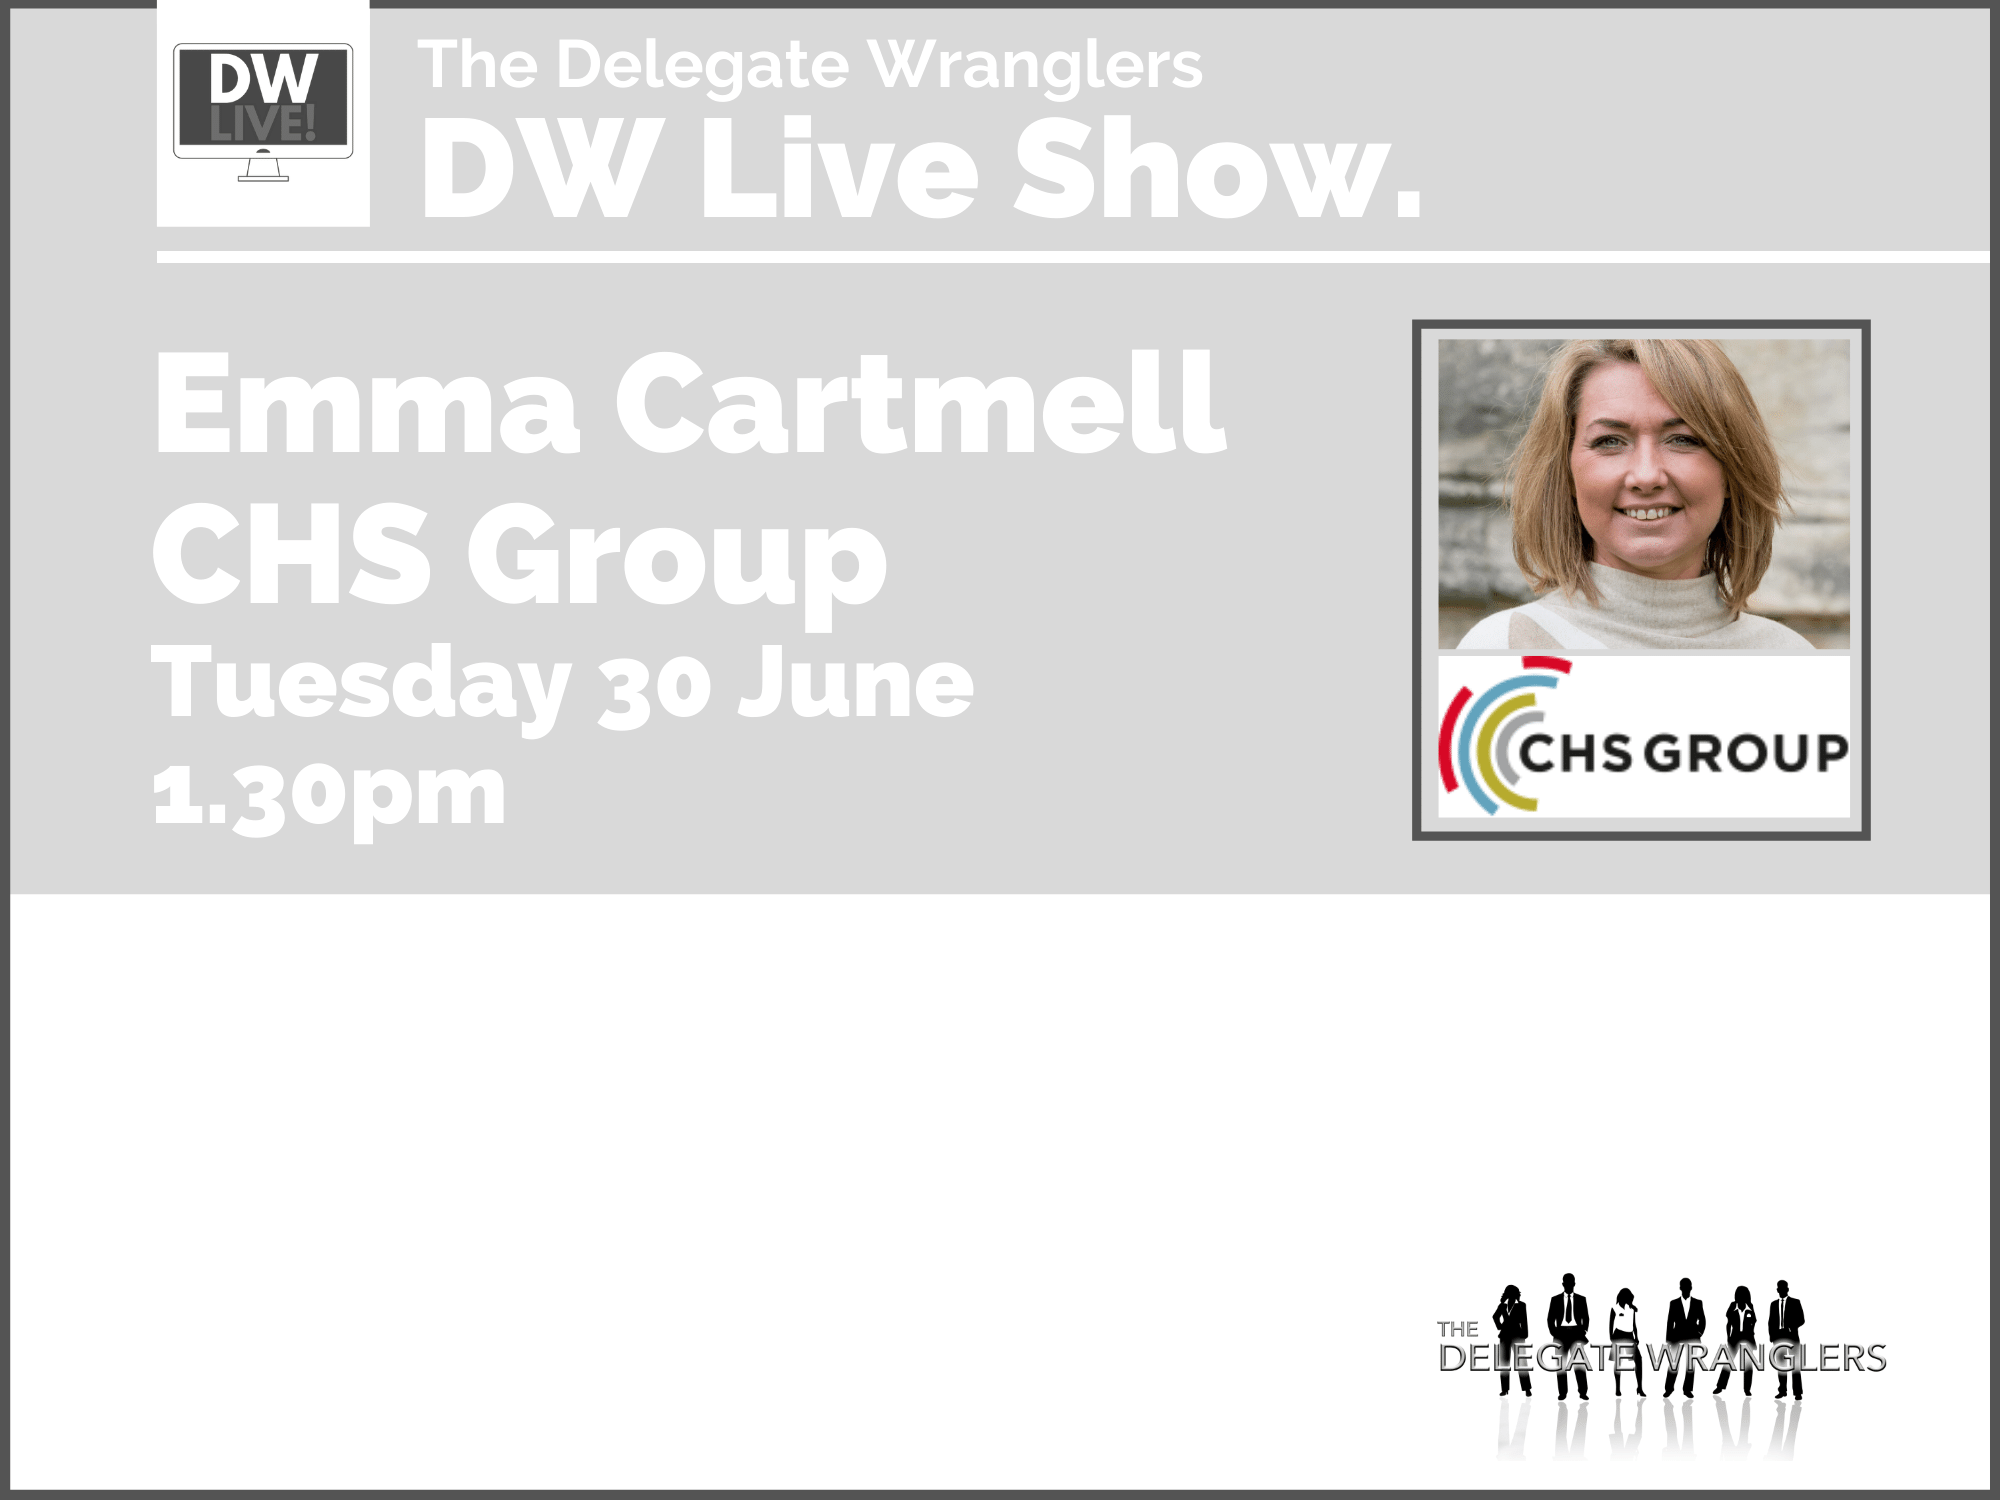 DW Live #19 - Emma Cartmell - Adapting & Moving Forward - A Positive Mindset